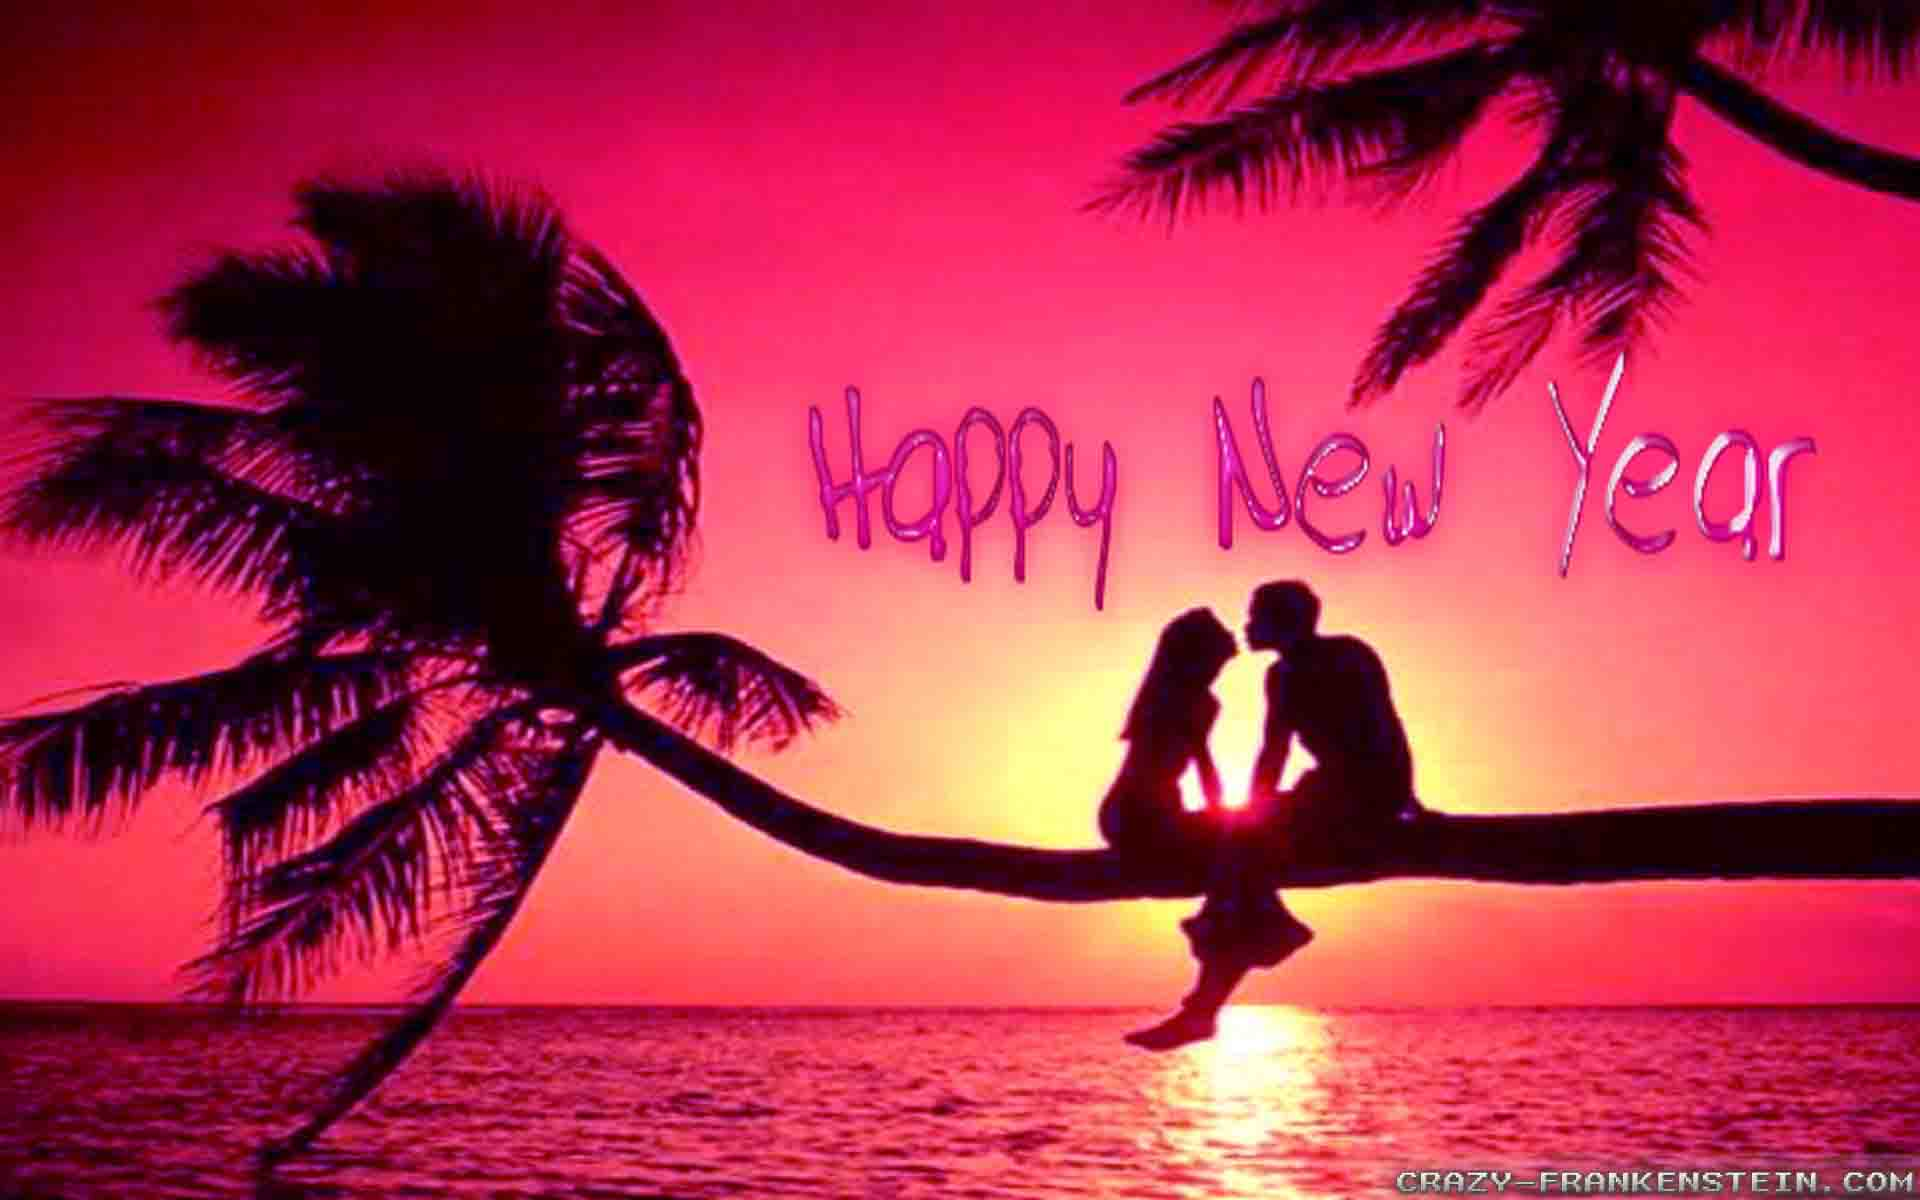 soul mate happy new year 2016 images to her him couples wife husband gf bf